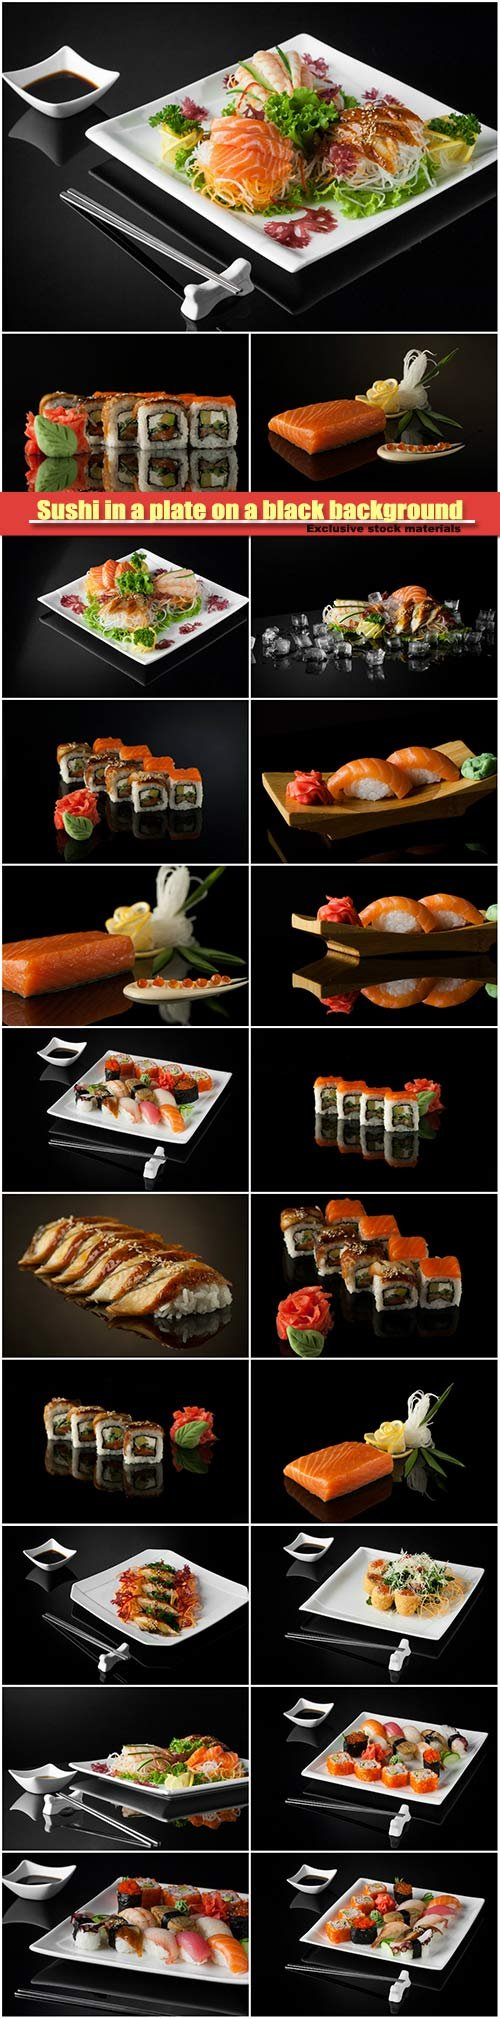 Sushi in a plate on a black background